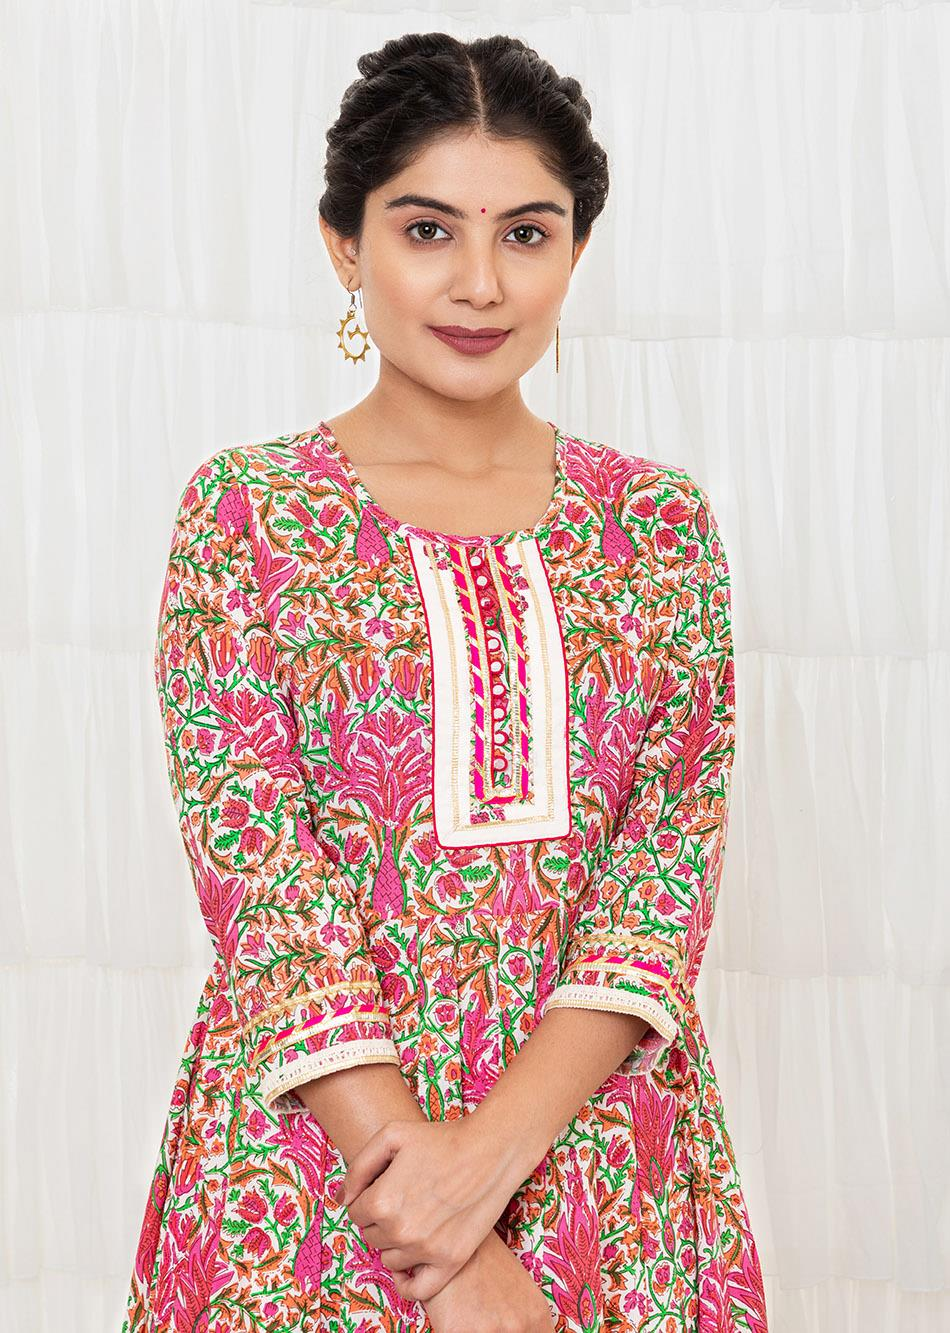 Off-White printed Anarkali Set By Jovi Fashion